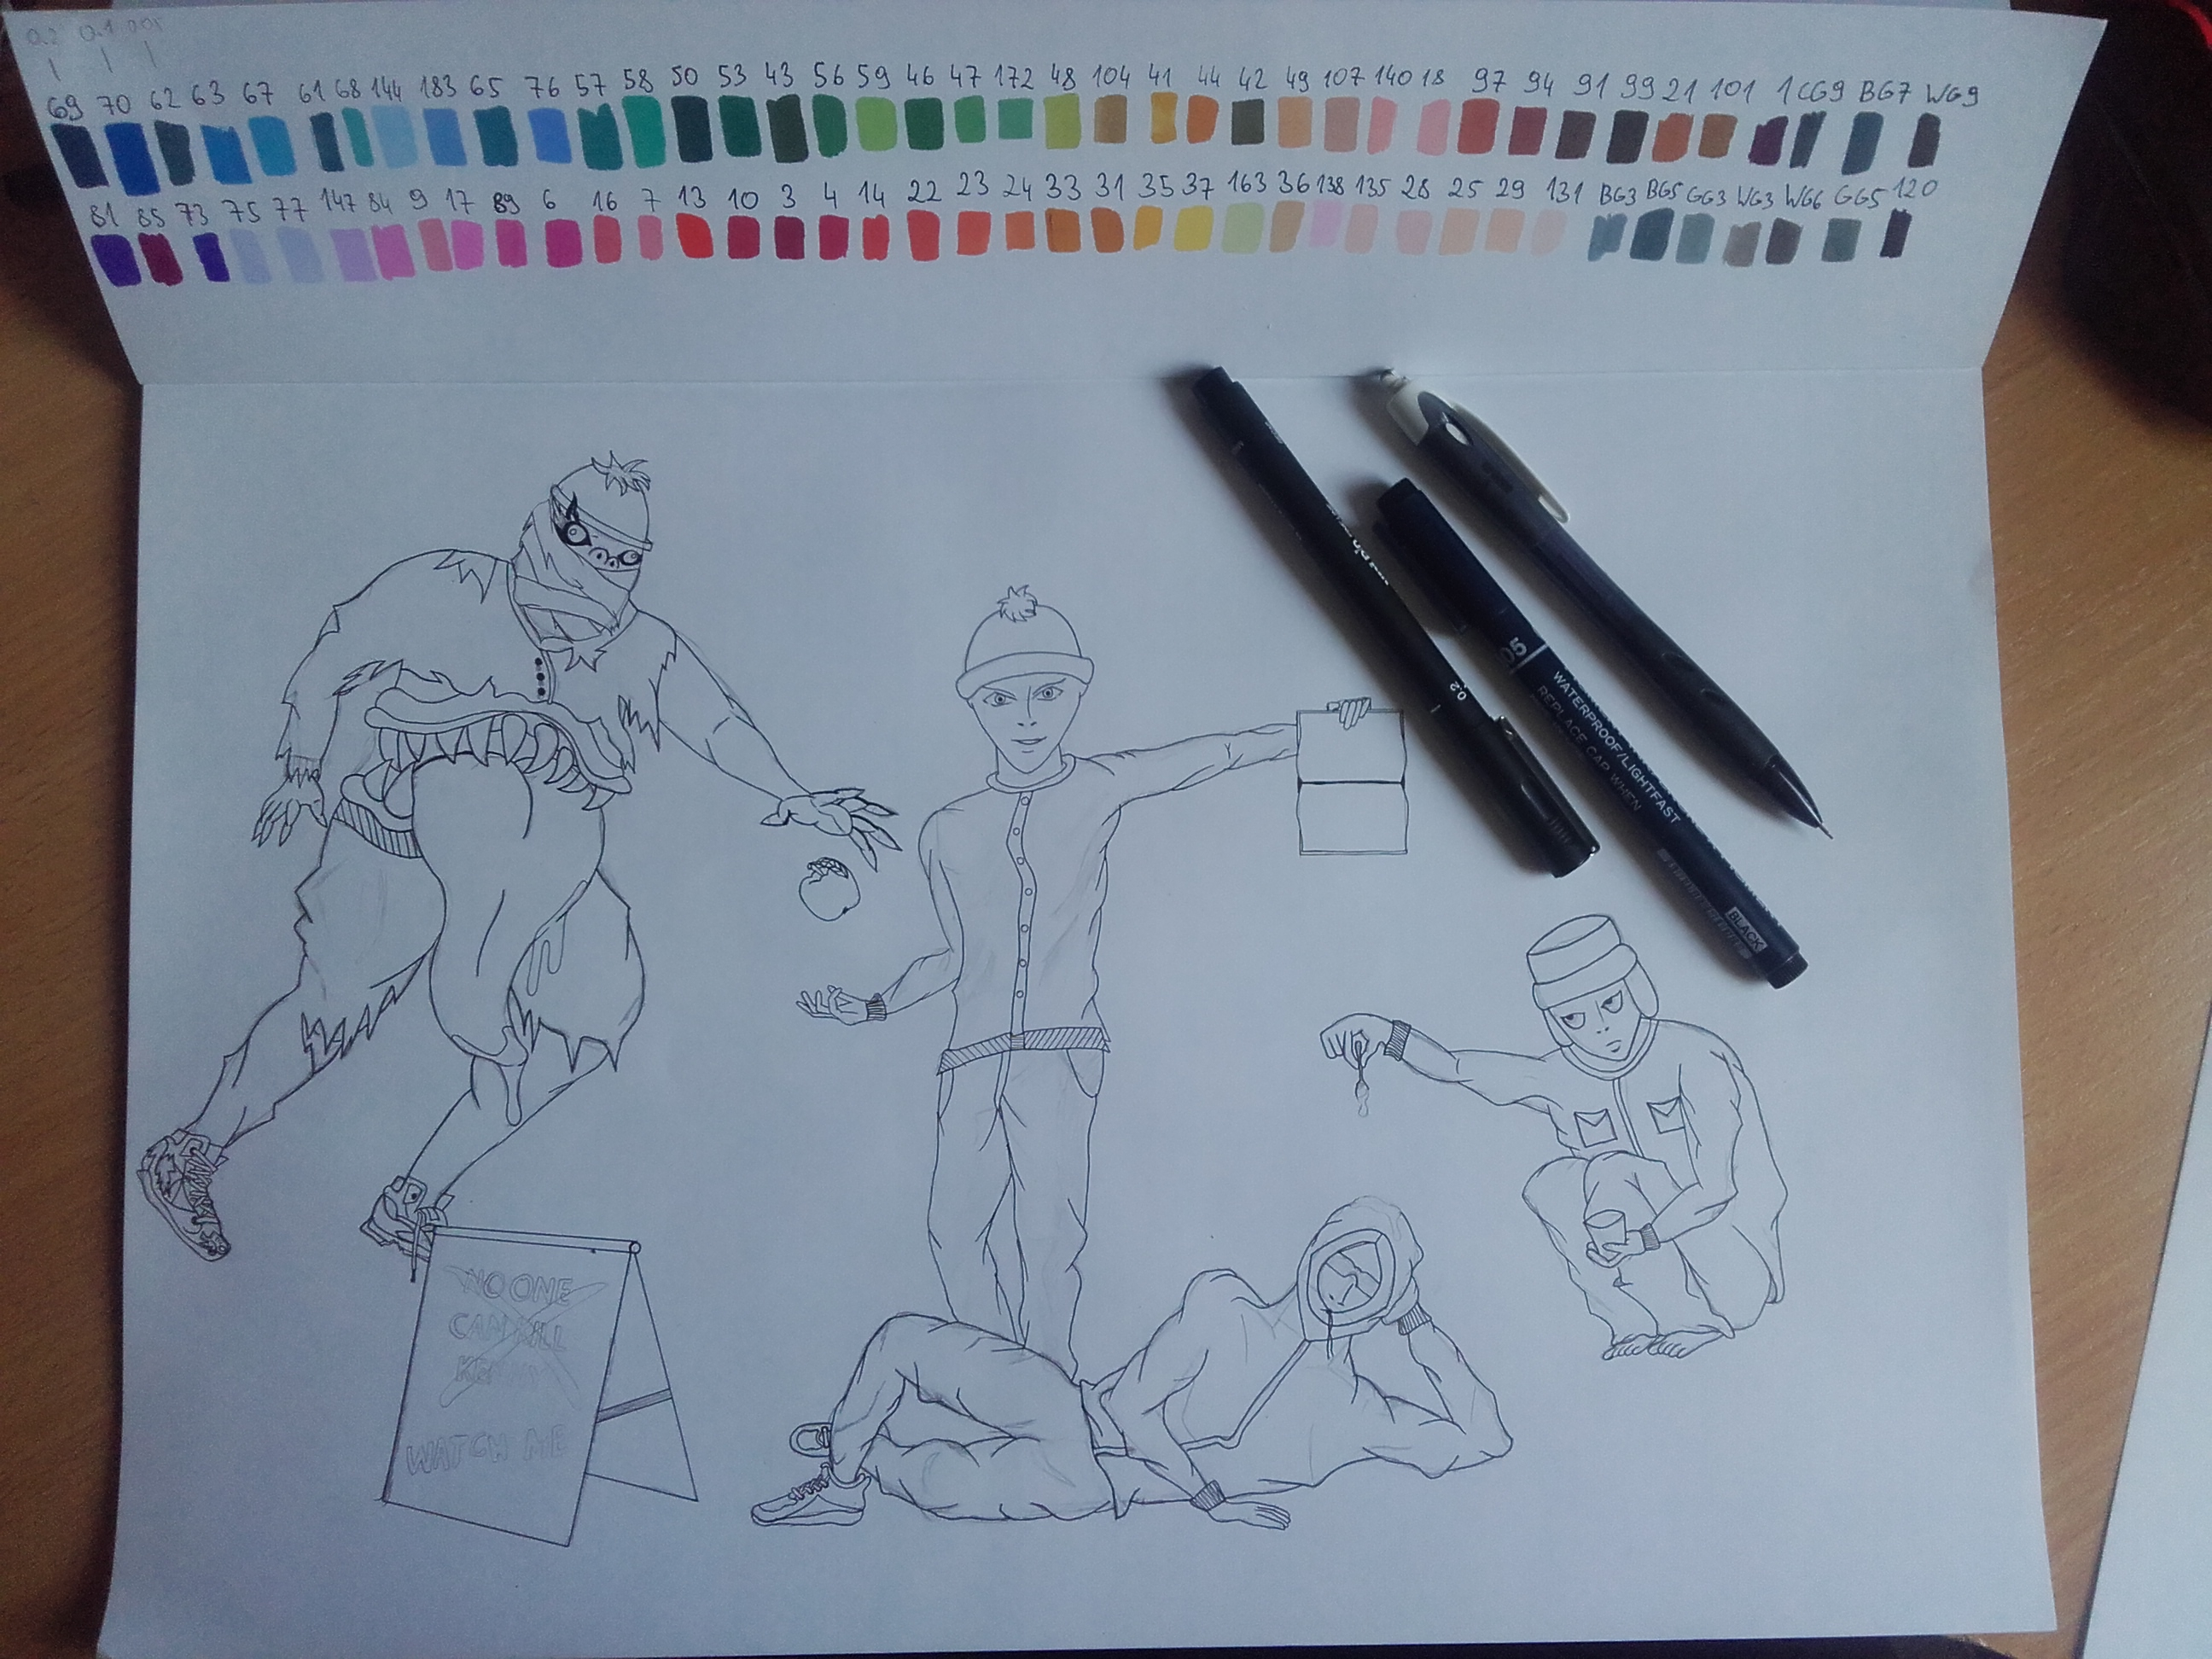 WIP - South Park swapped to Death Note style